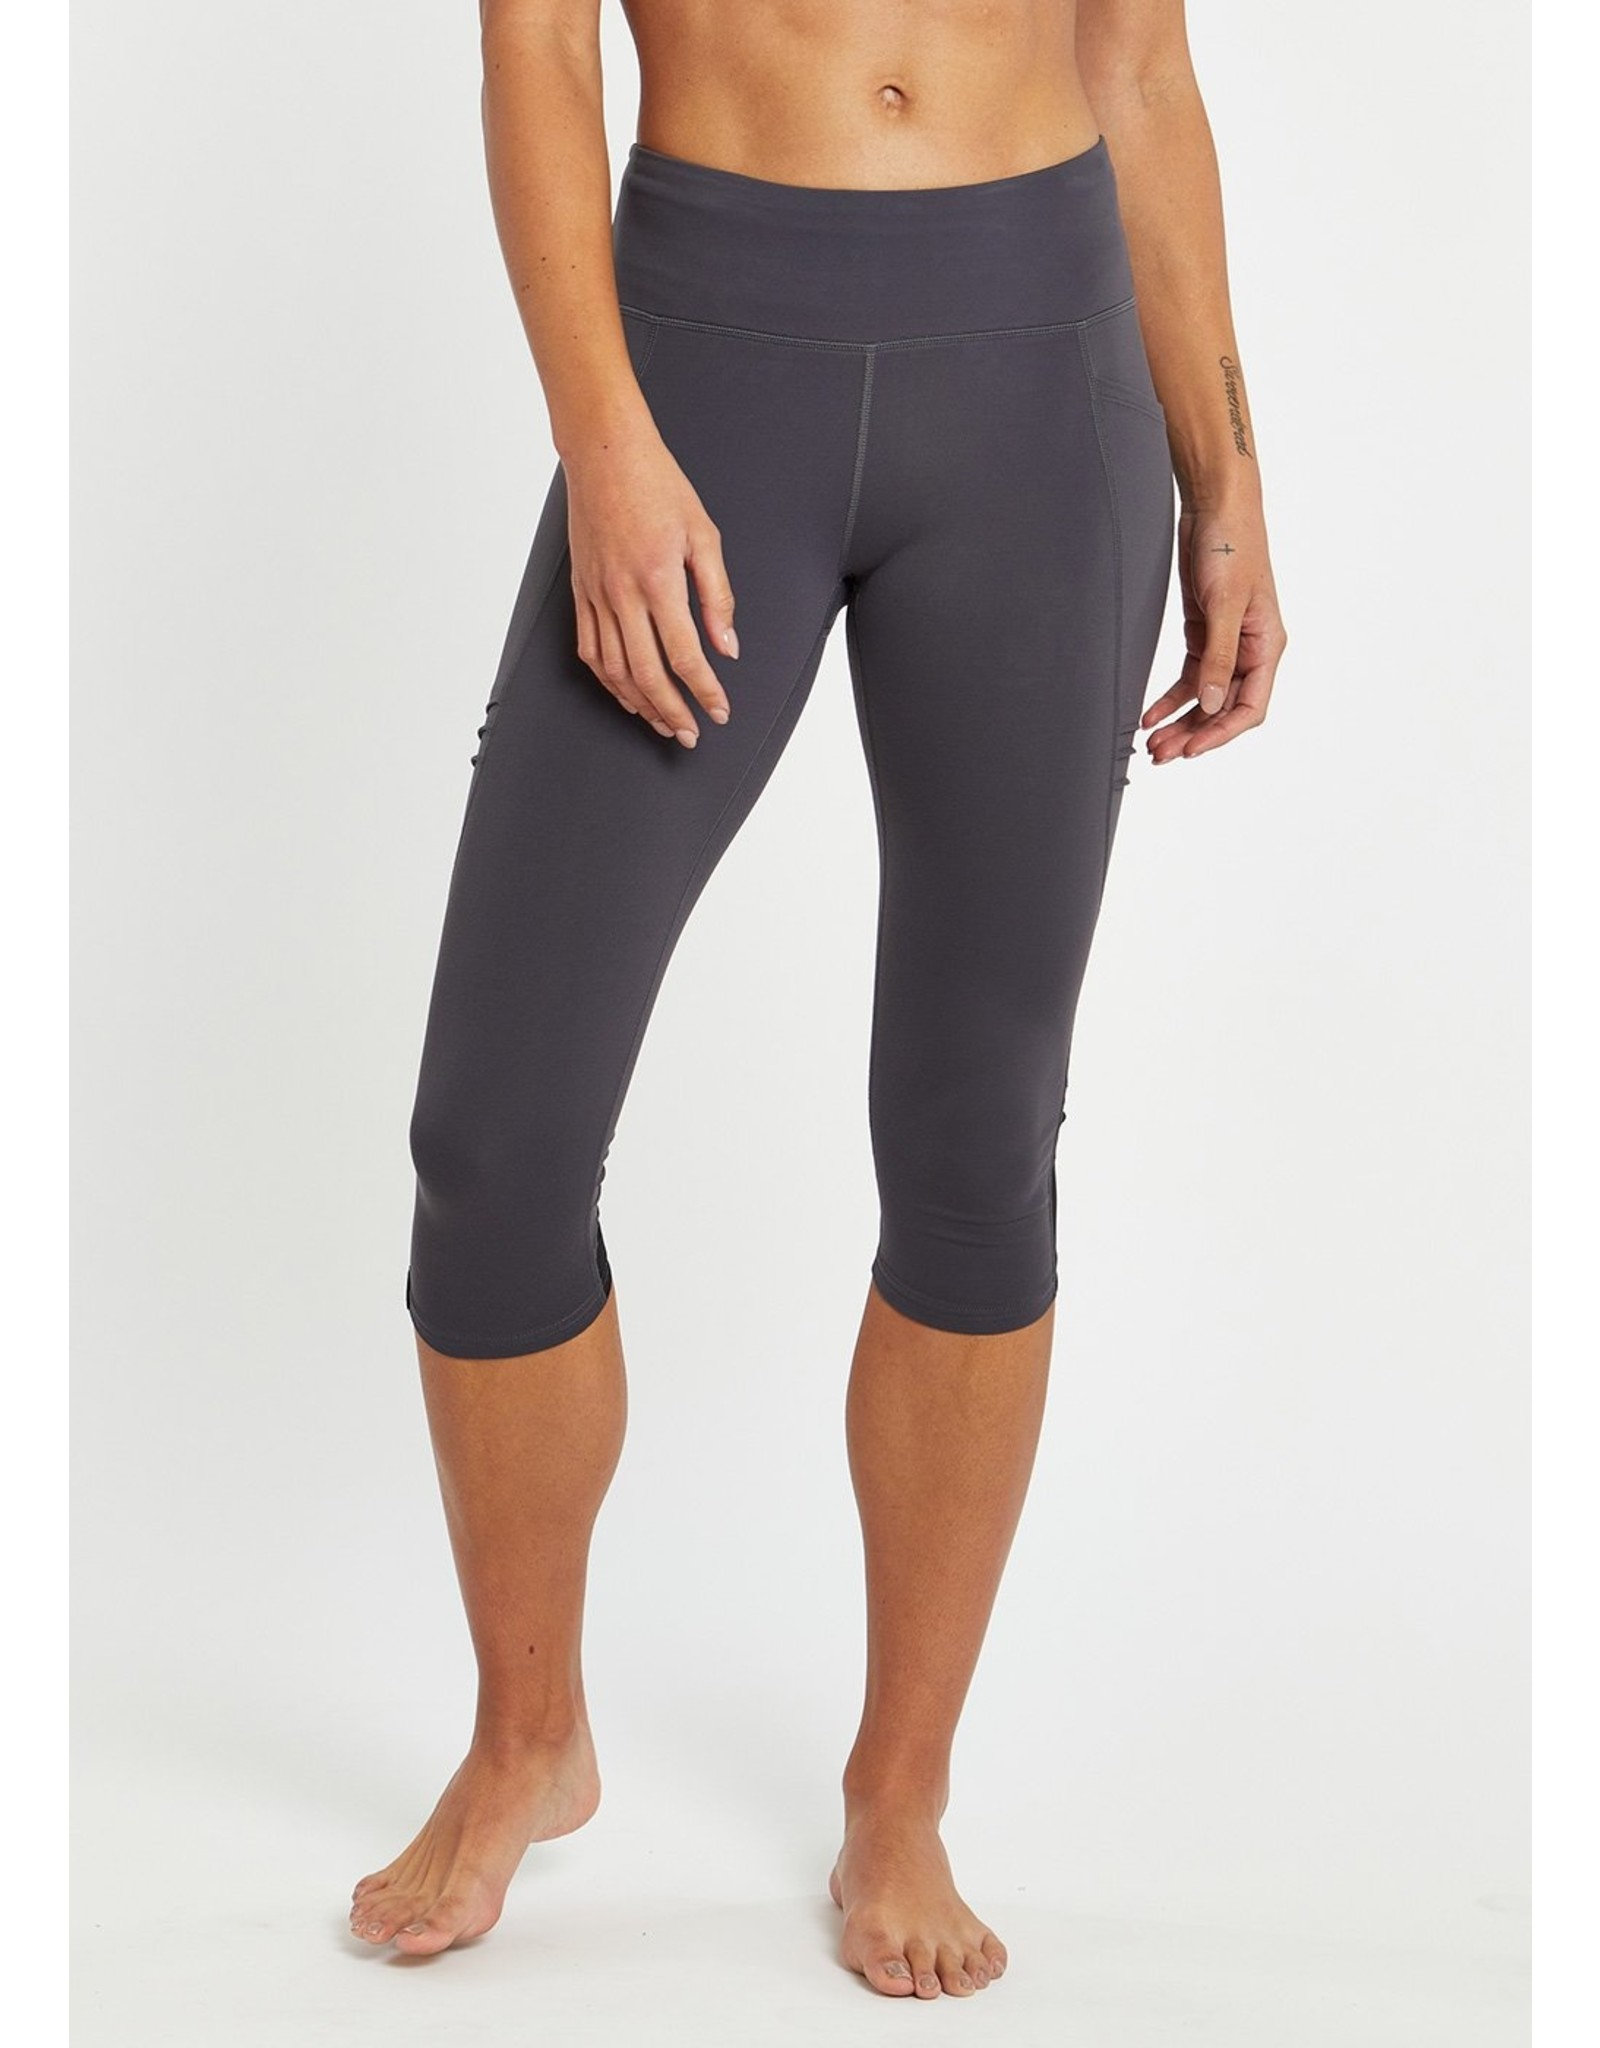 Oiselle S21 Triple Threat Knickers